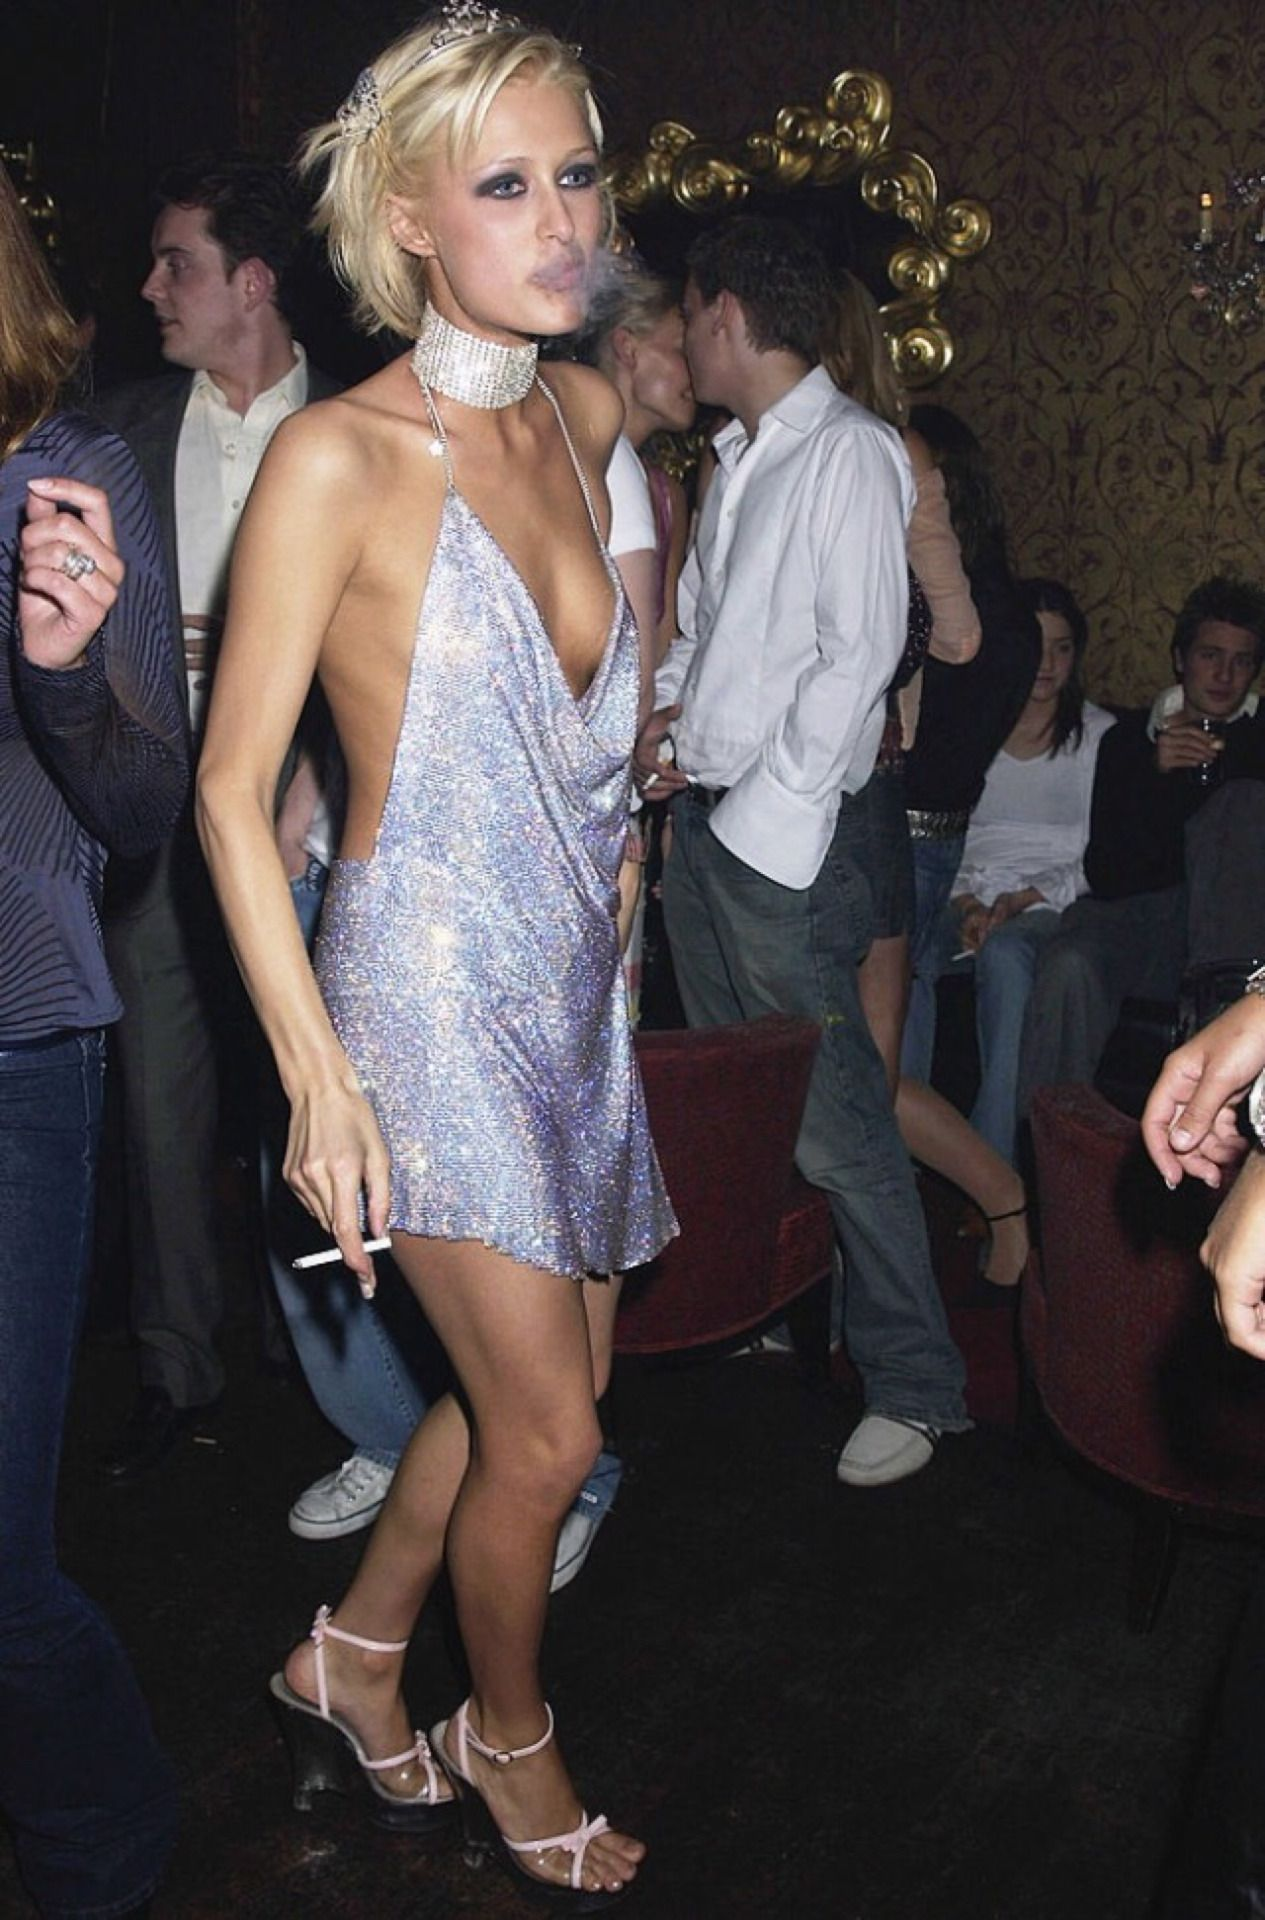 as kool as Paris Hilton on her 21st birthday pls